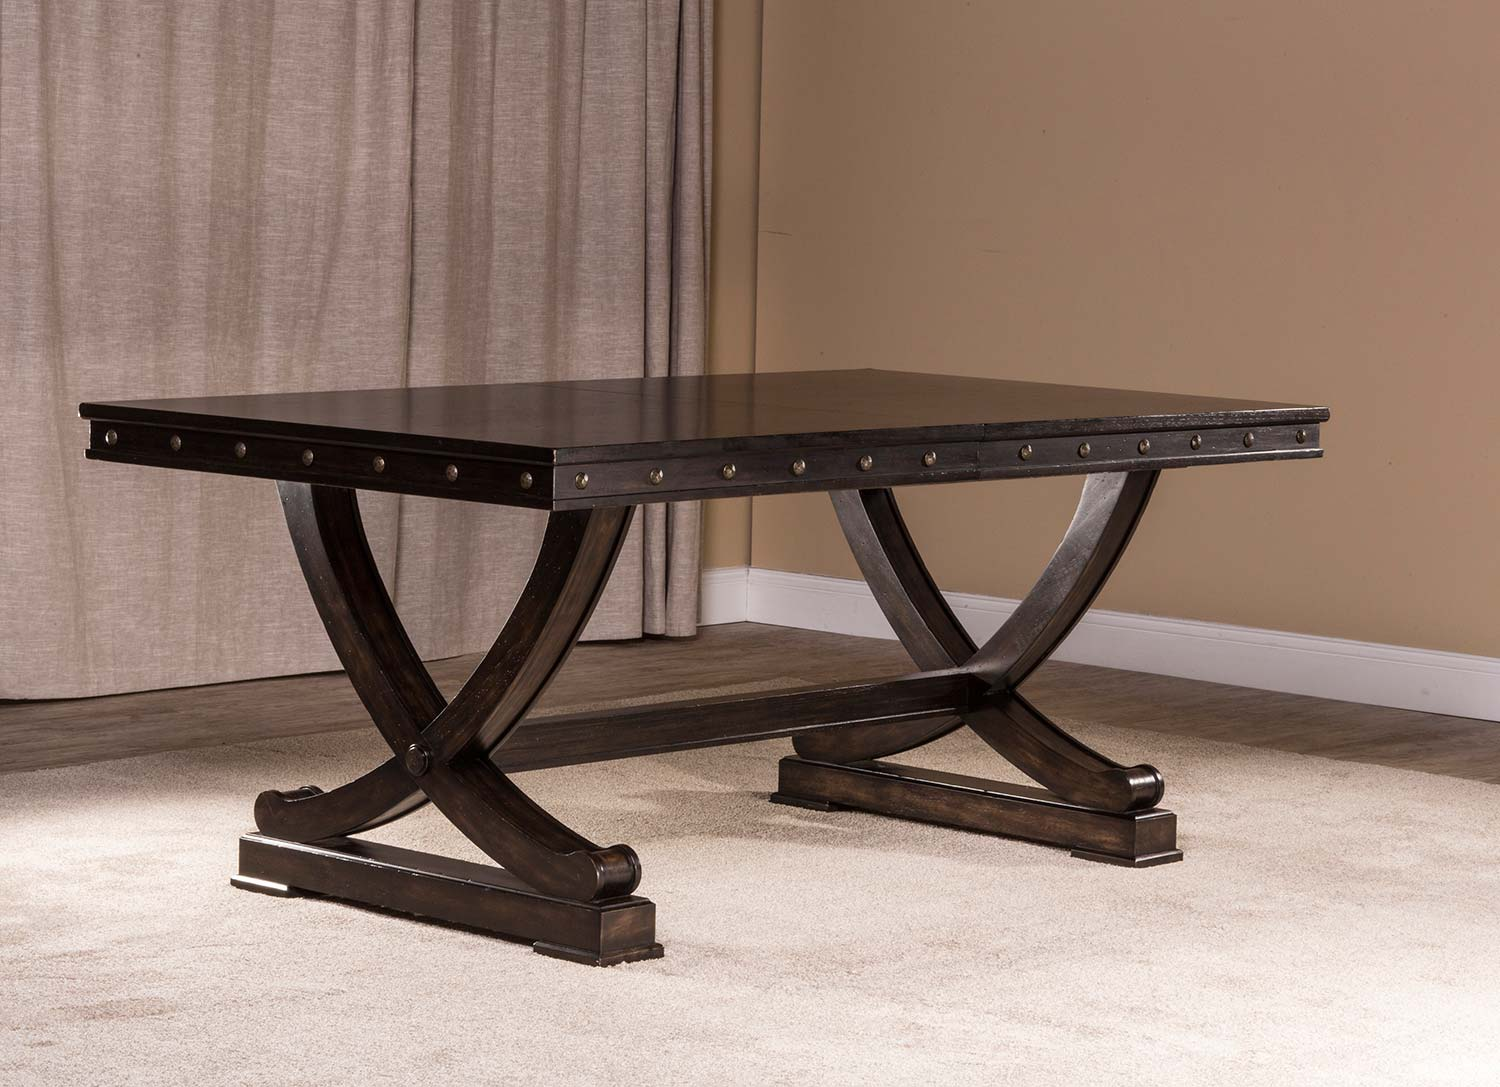 Beau Hillsdale Santa Fe Trestle Dining Table   Distressed Espresso